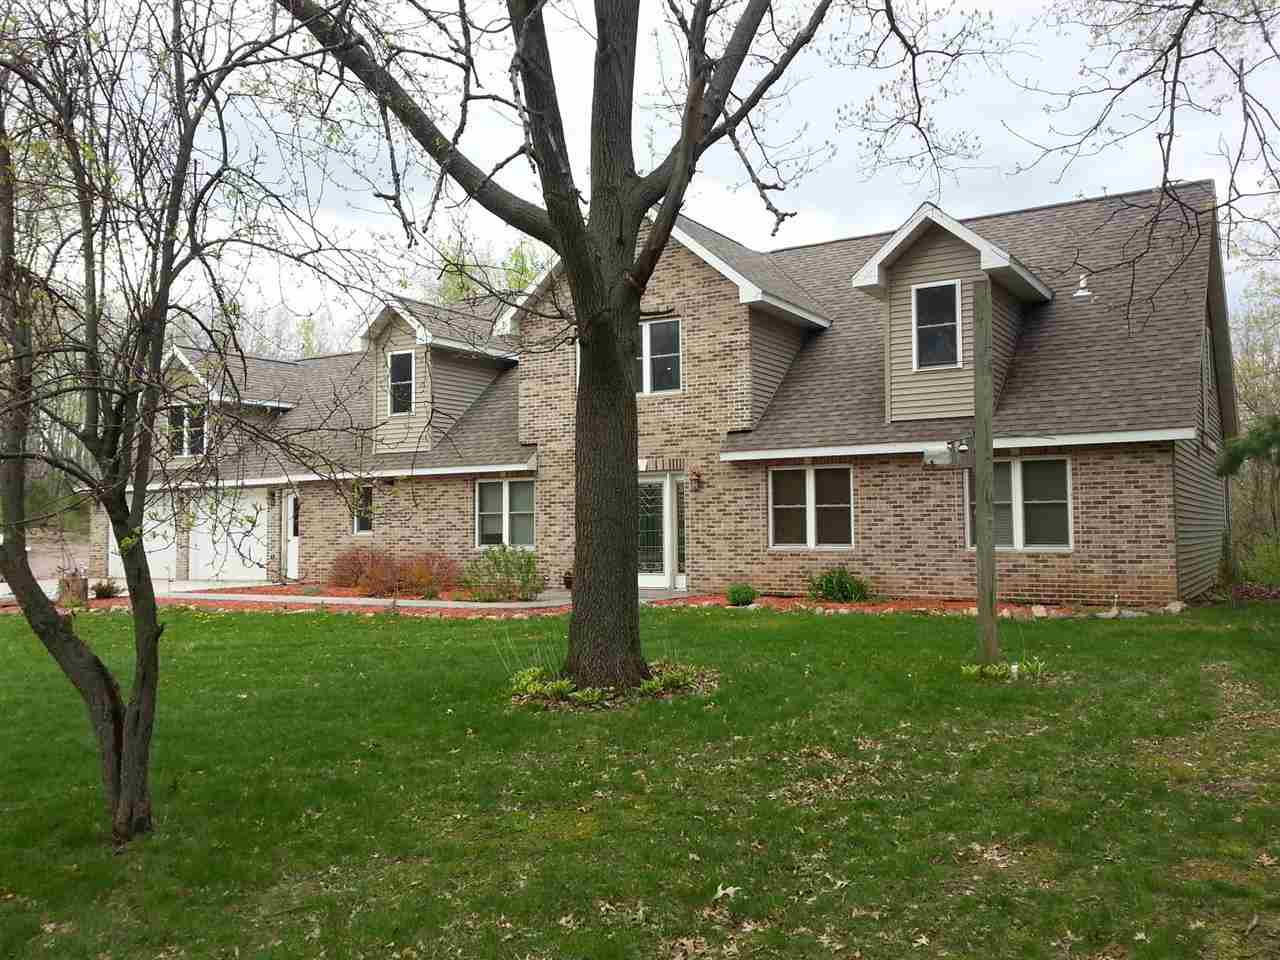 E11832  Trap Shoot Rd, Fairfield, WI 53913